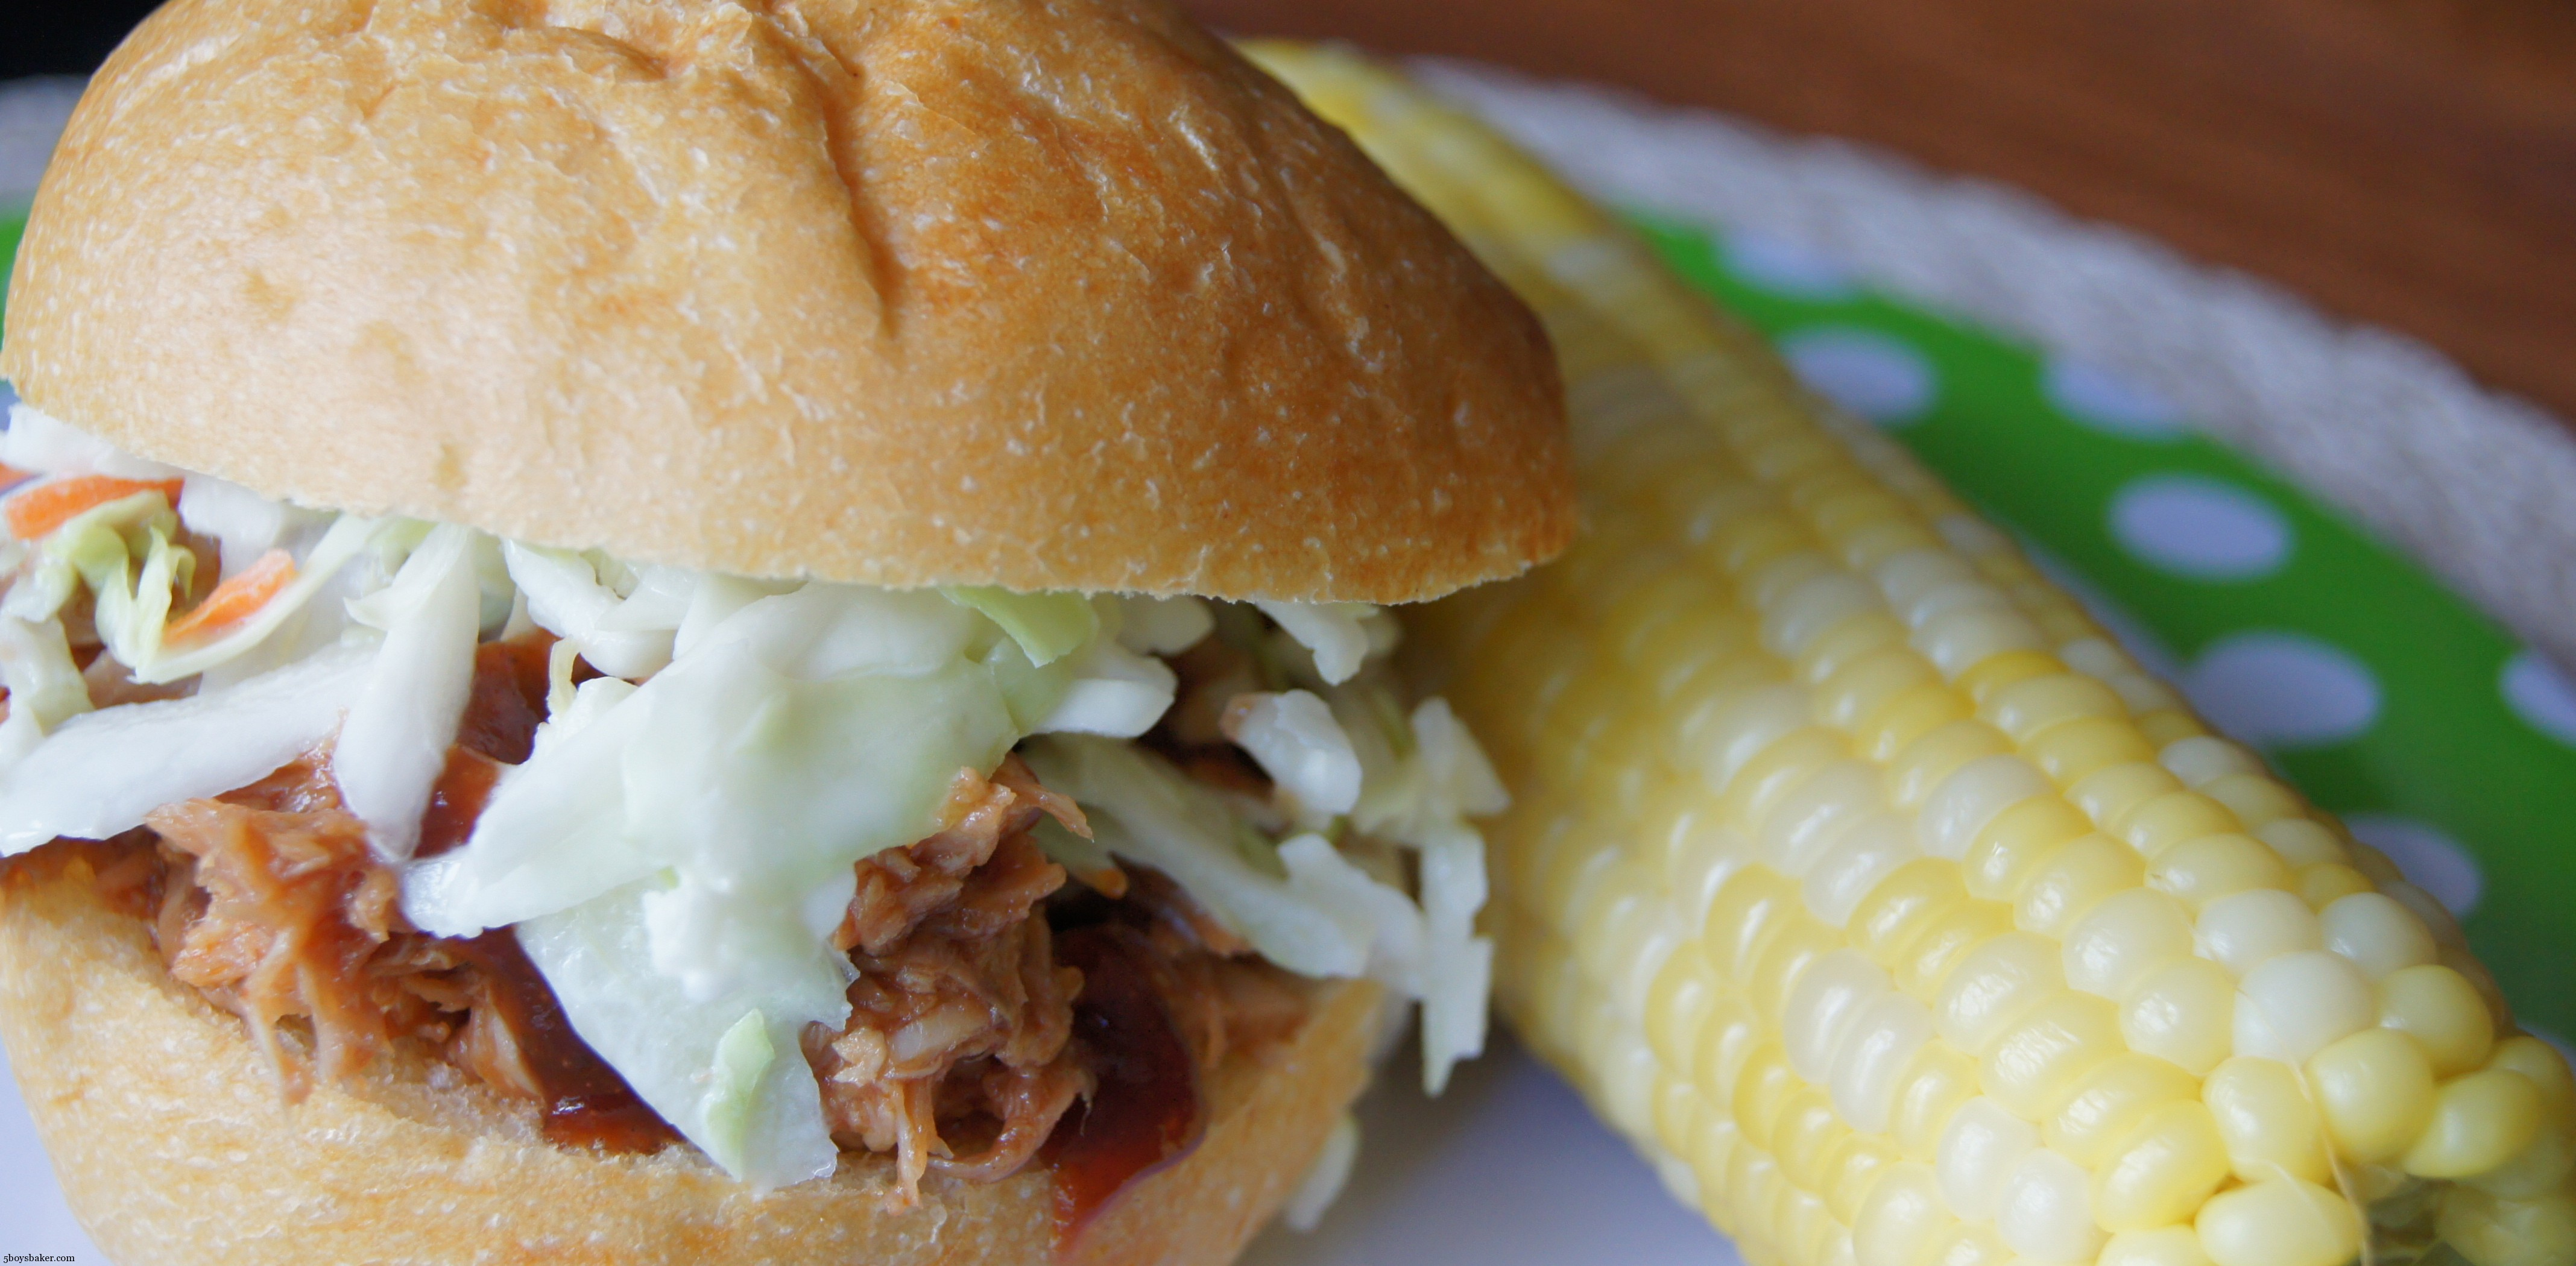 Pulled Pork Sandwiches with Coleslaw - 5 Boys Baker